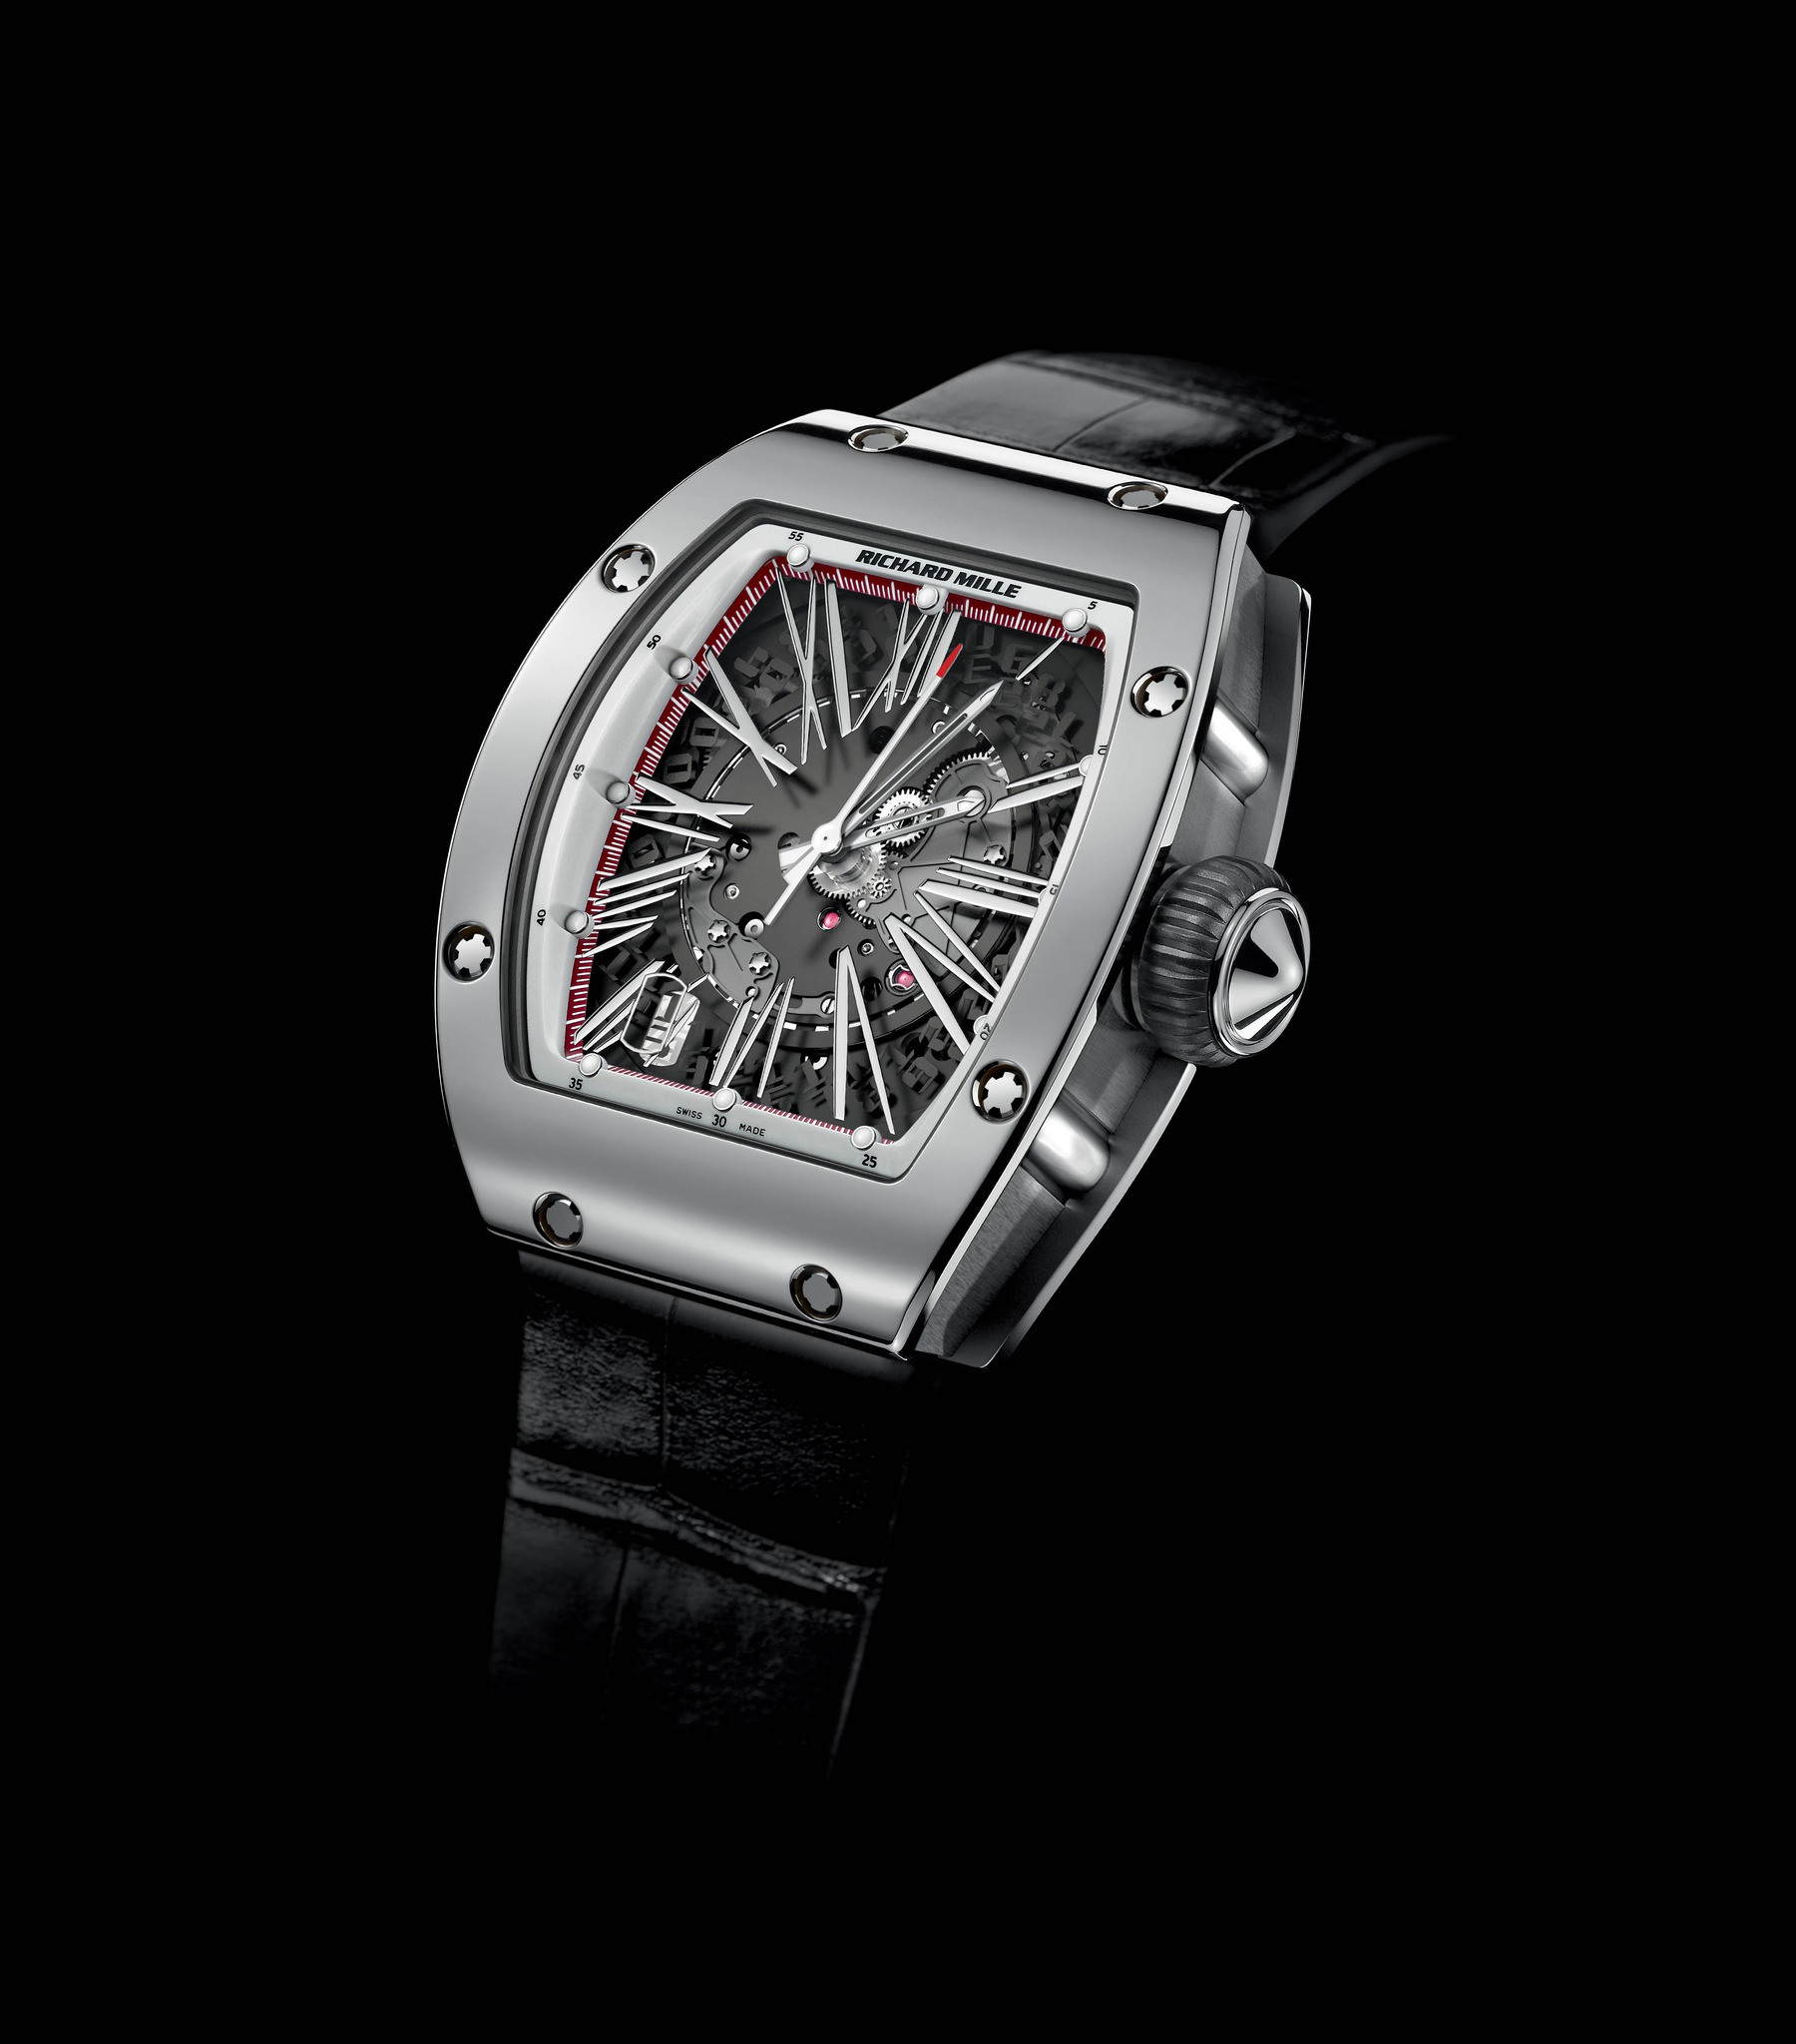 Replica Richard Mille RM 023 Automatic White Gold Watch